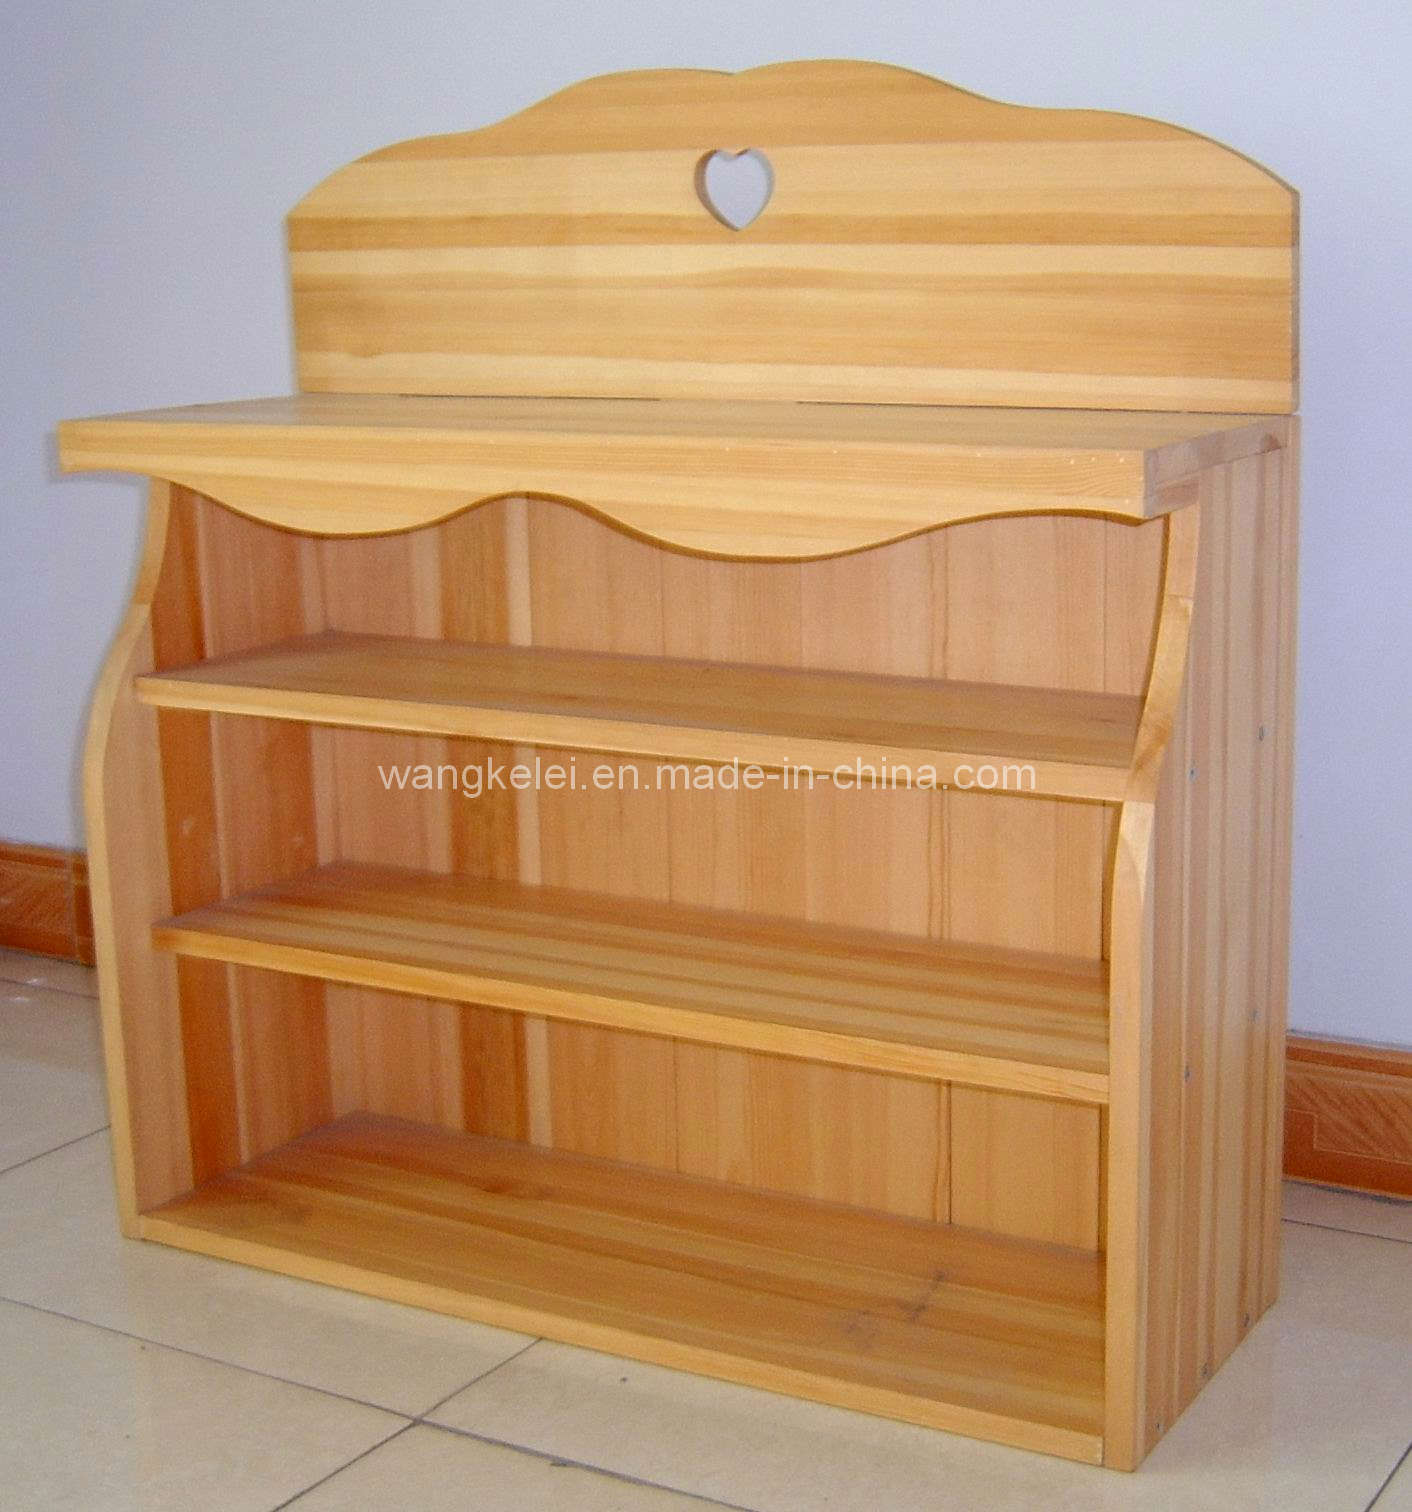 China Wooden Furniture Cj 0225 China Wooden Furniture